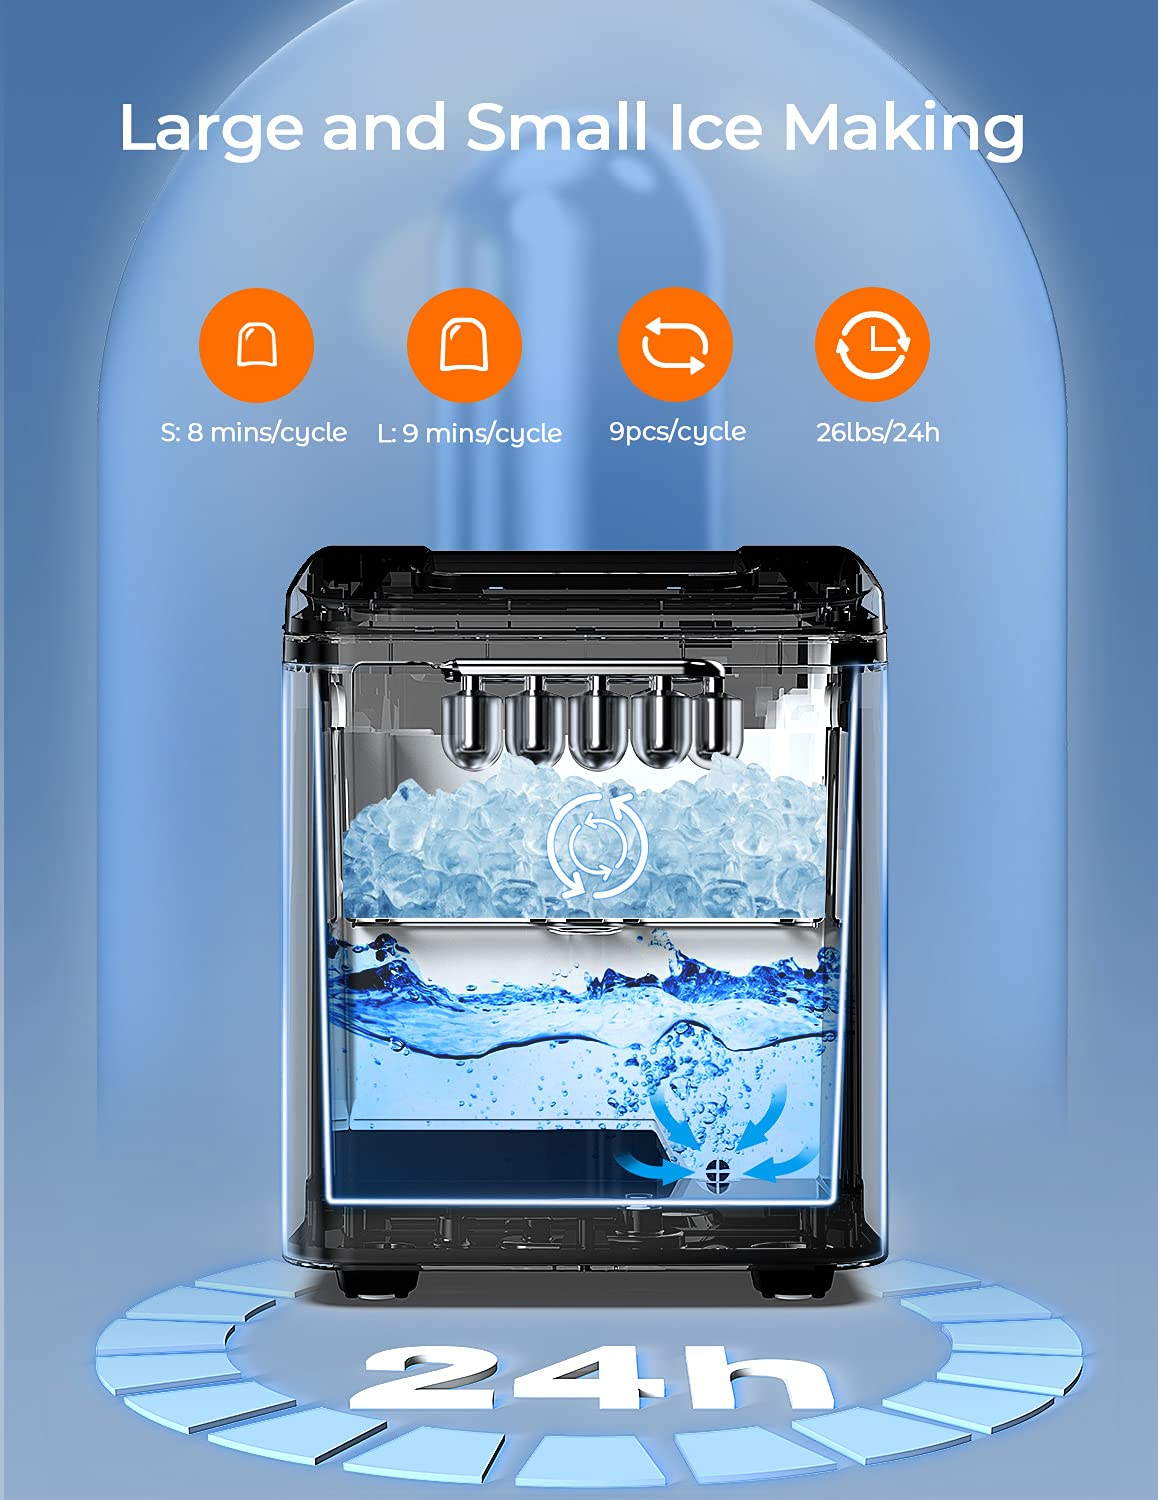 Dreamiracle Ice Maker Machine Countertop, 26 lbs in 24 Hours, Self-cleaning Ice Maker Countertop, 9 Cubes Ready in 8 Mins, Electric Ice Maker with Ice Scoop and Basket Home/Kitchen/Office